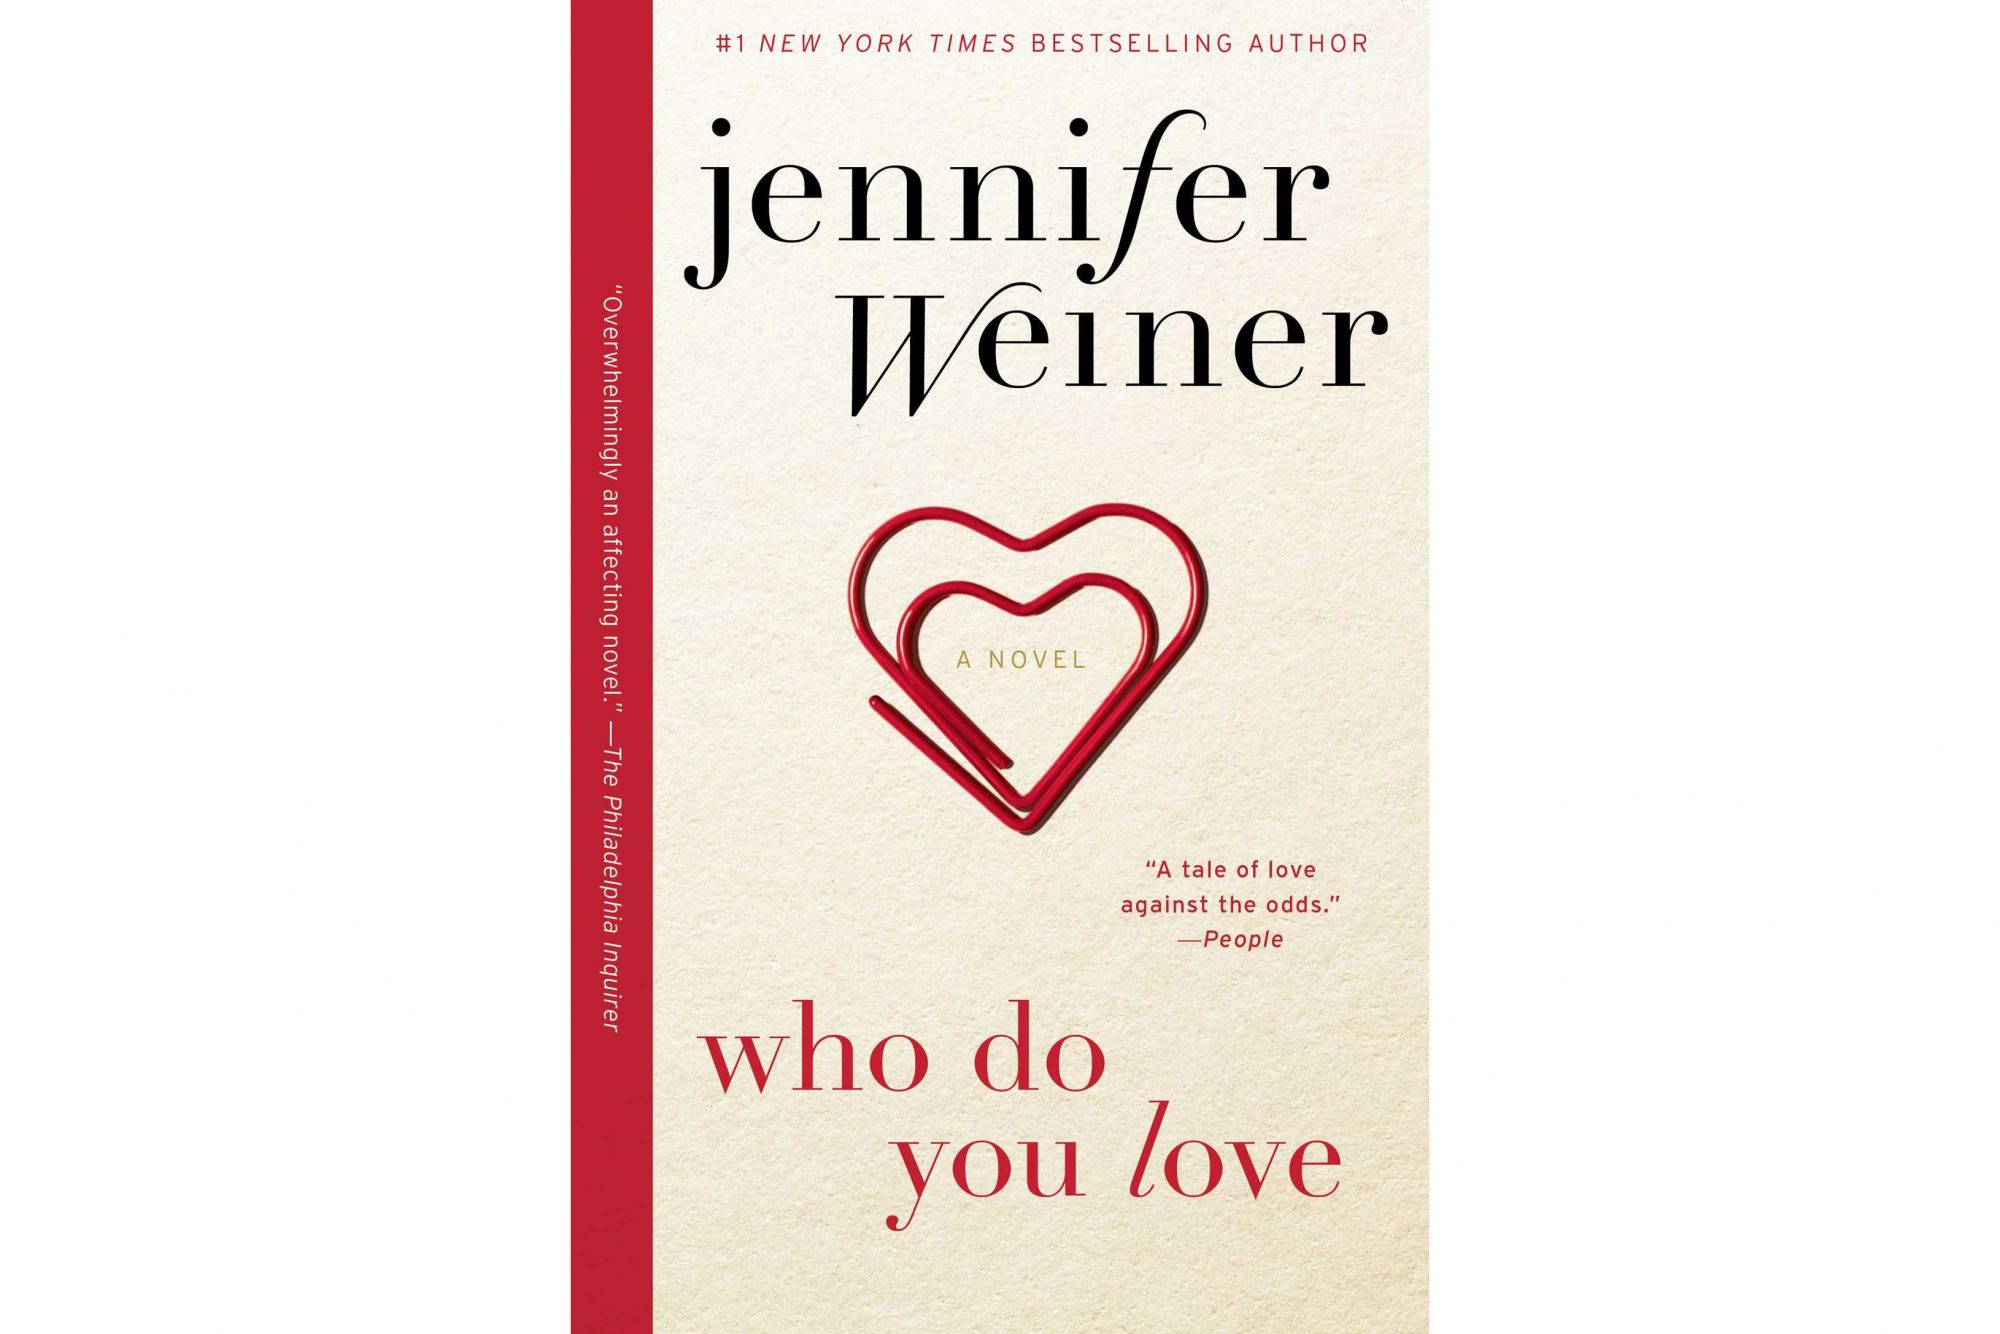 Who Do You Love, by Jennifer Weiner